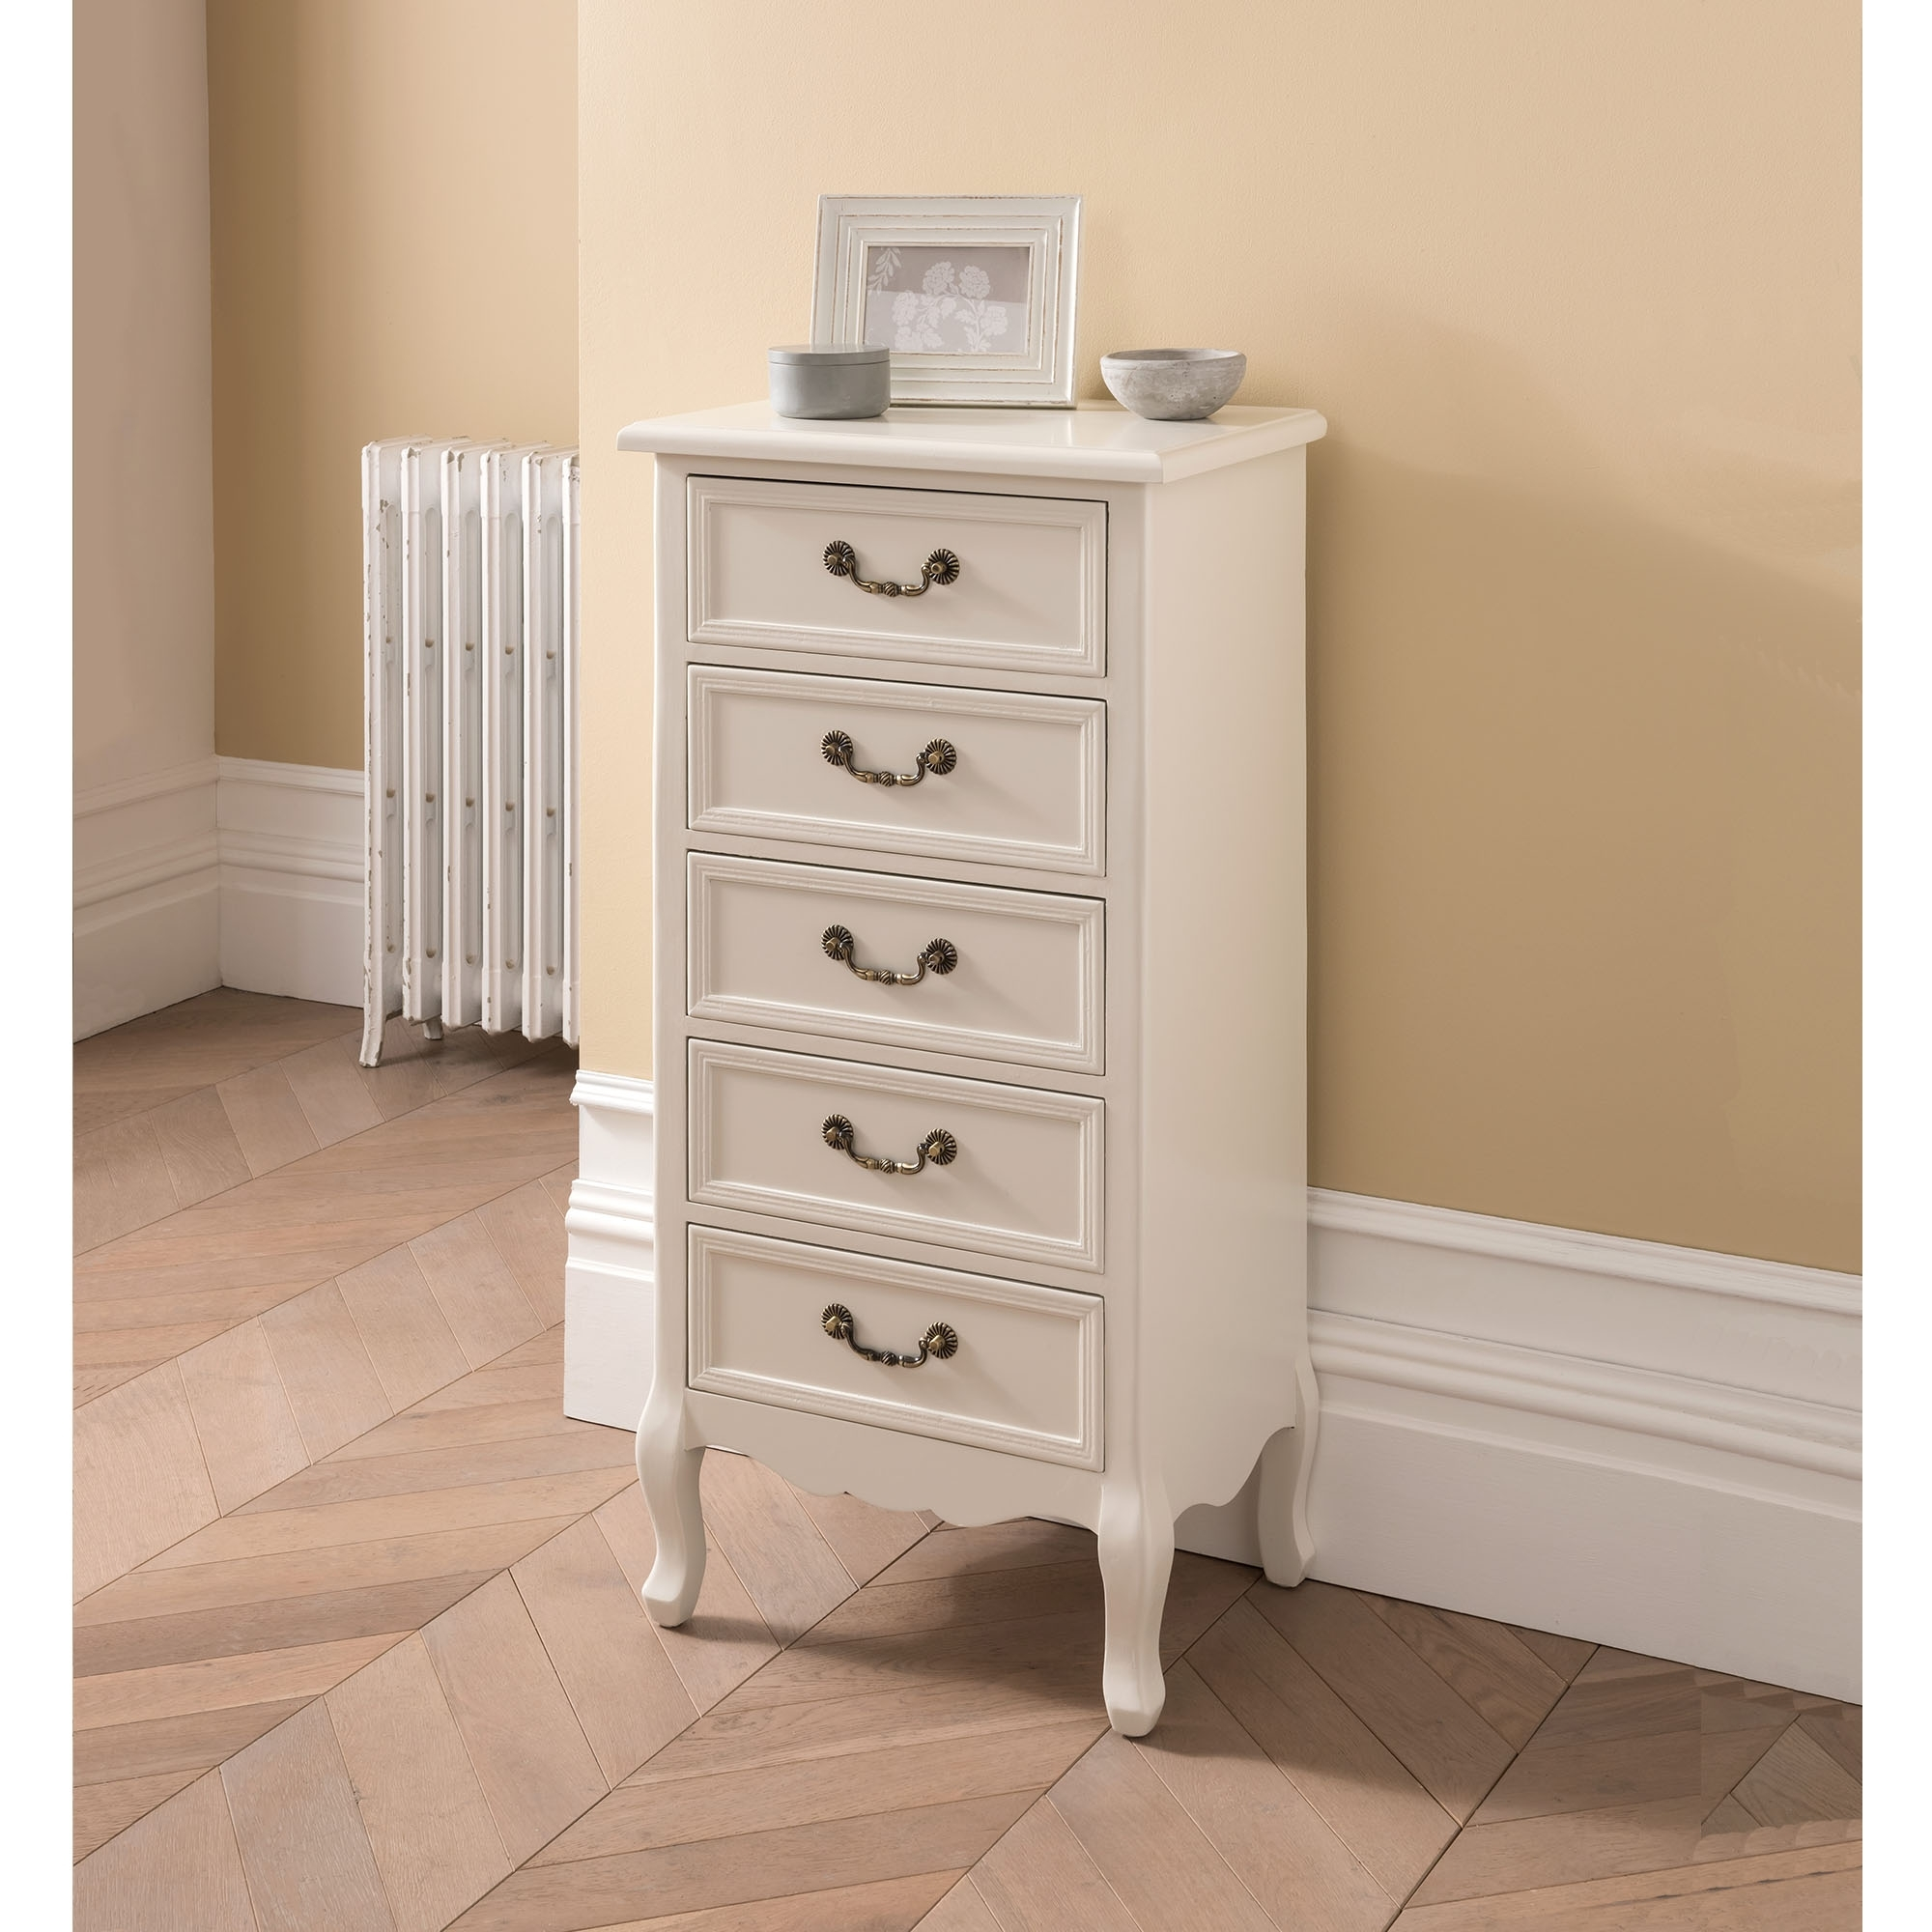 8836182af31b Etienne White 5 Drawer Antique French Style Tallboy Chest | Shabby Chic